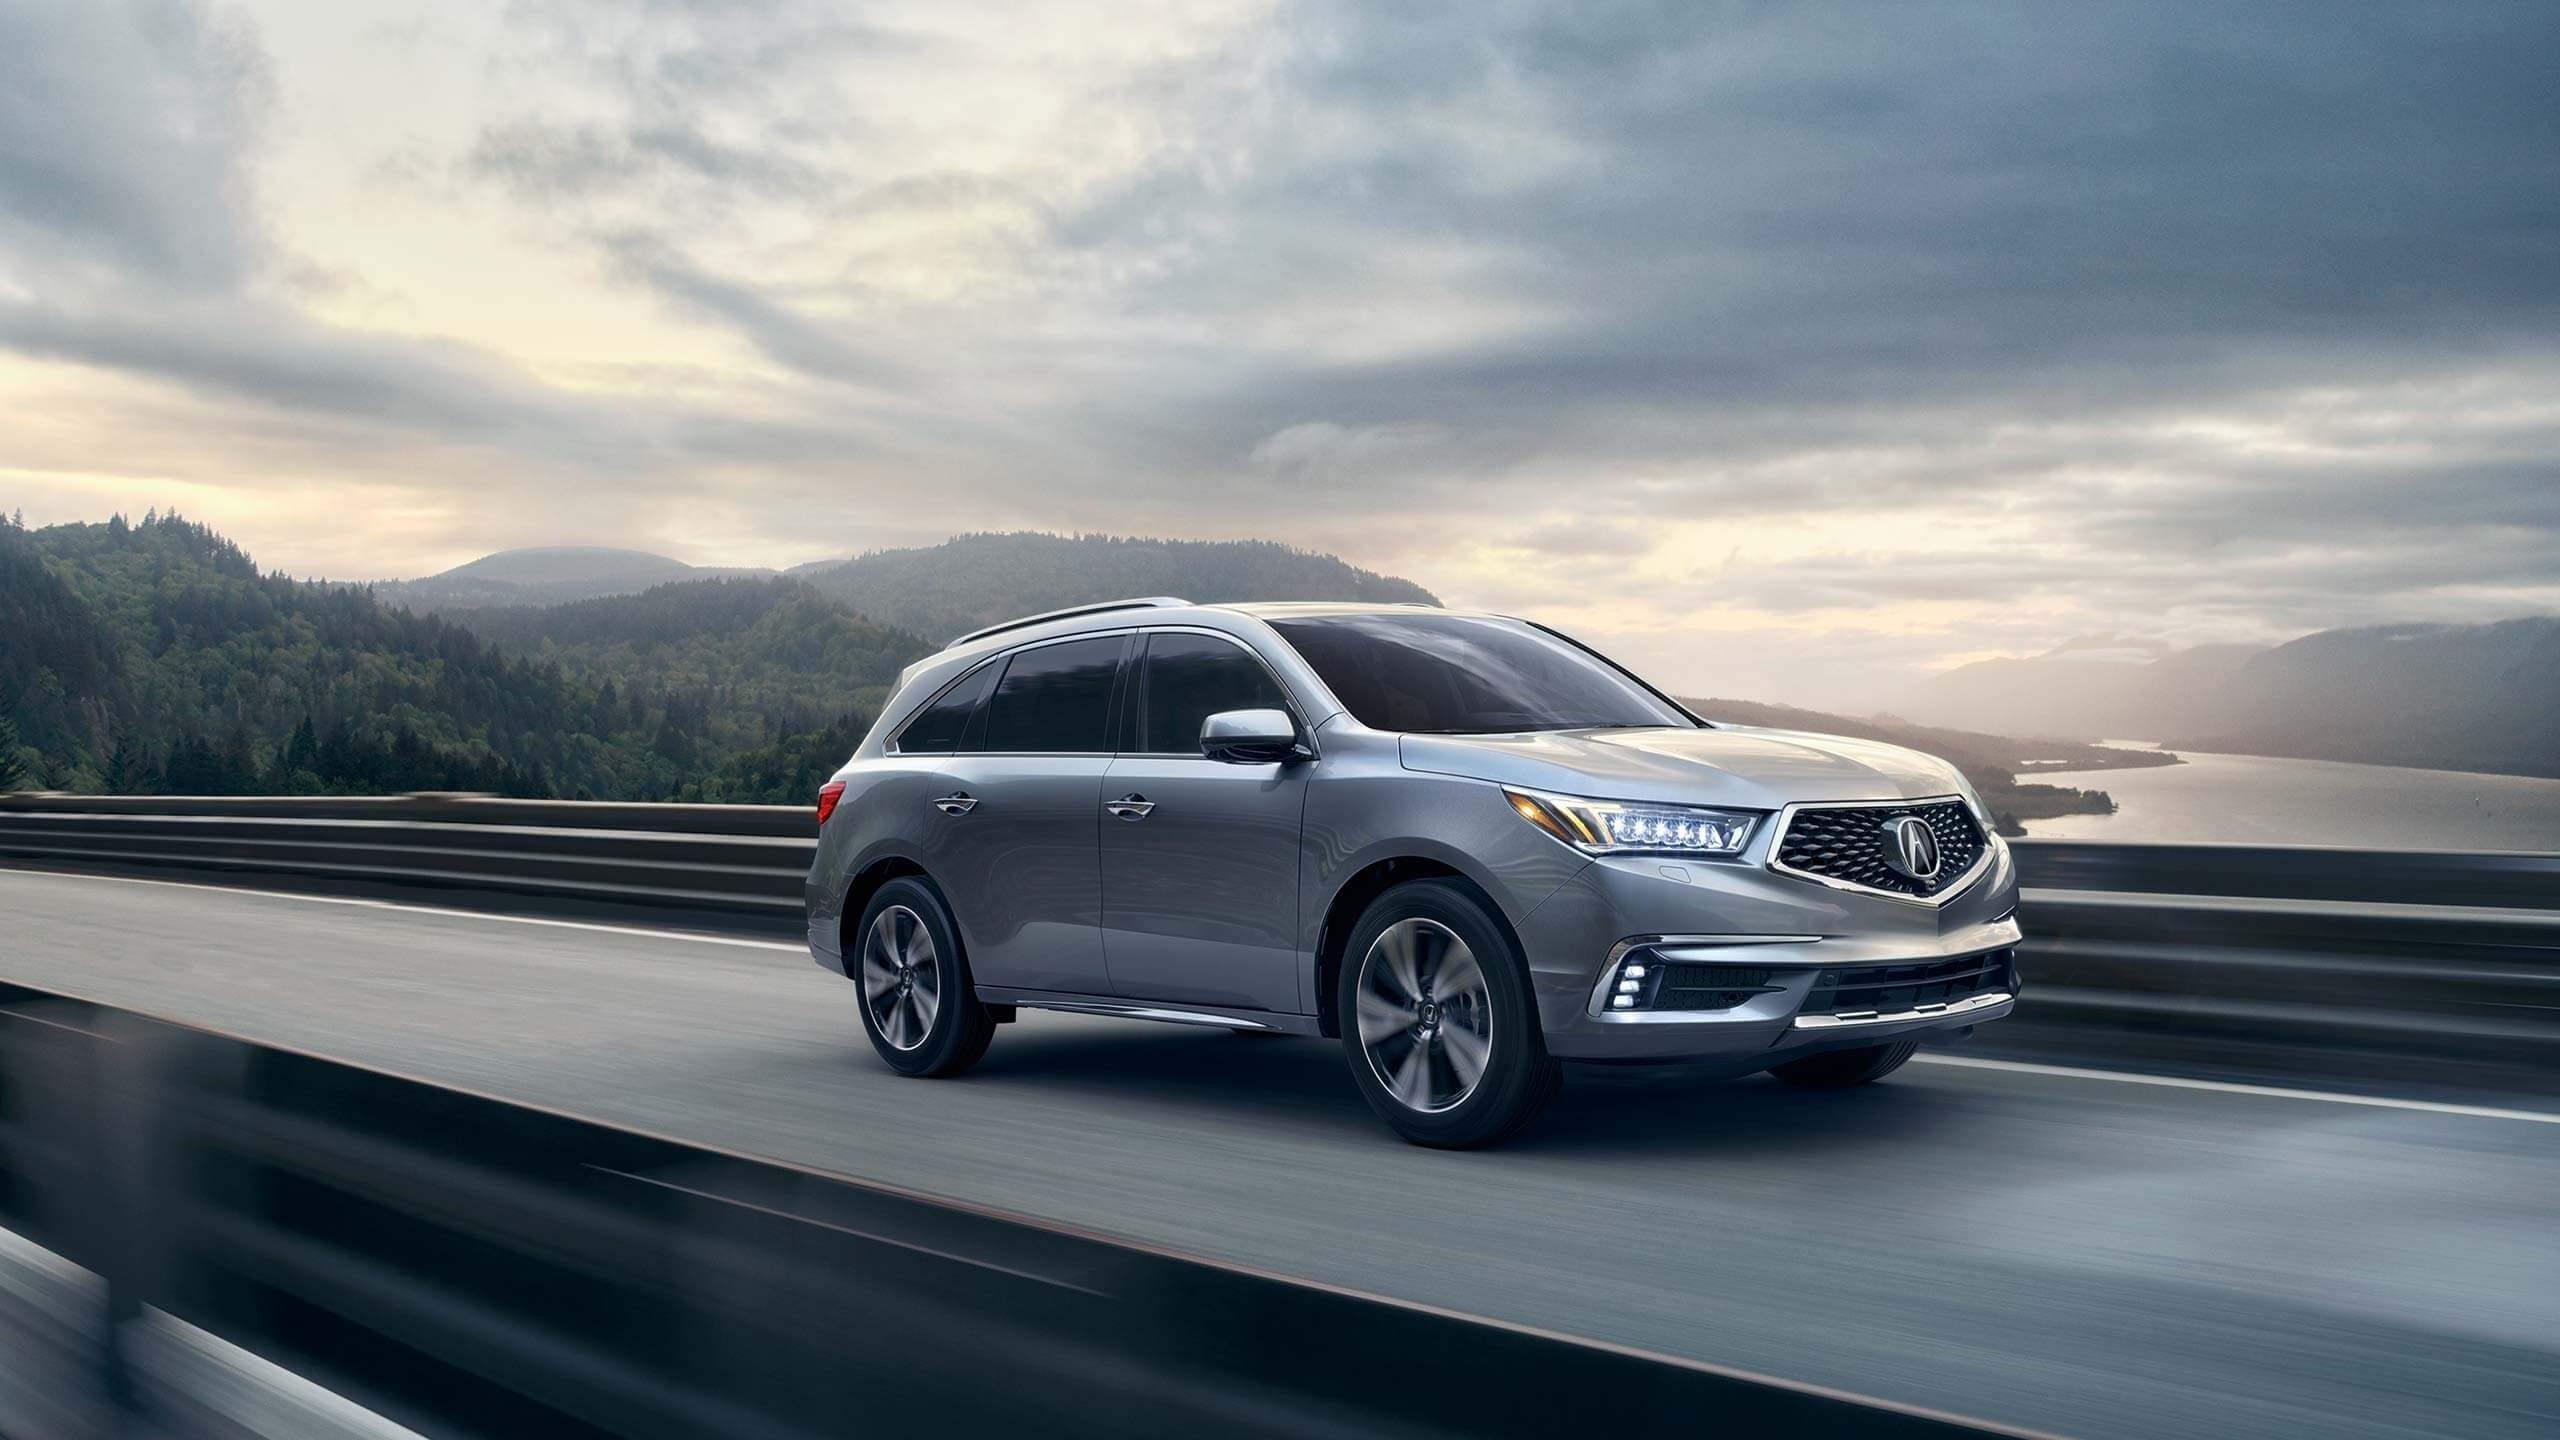 Acura Pickering Reviews The Mdx Tech Acura Pickering